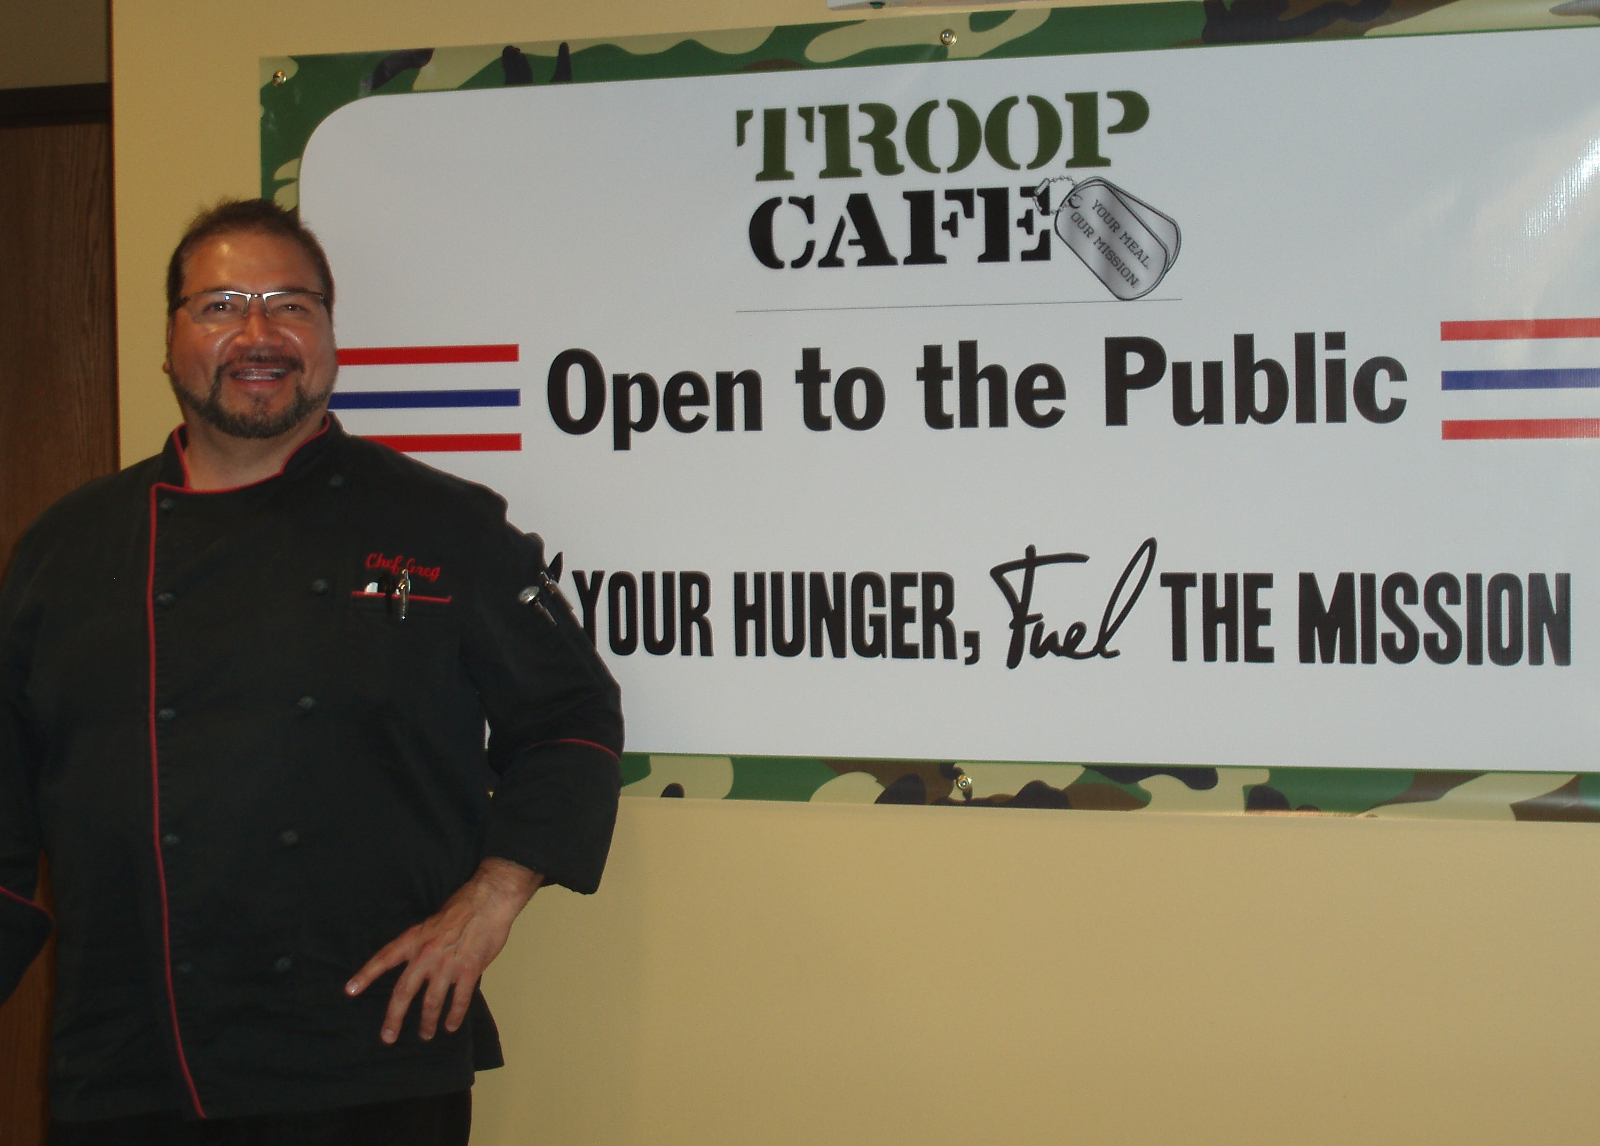 Greg Bautista, Head Chef, helps promote Troop Café's slogan: Feed Your Hunger, Fuel The Mission.